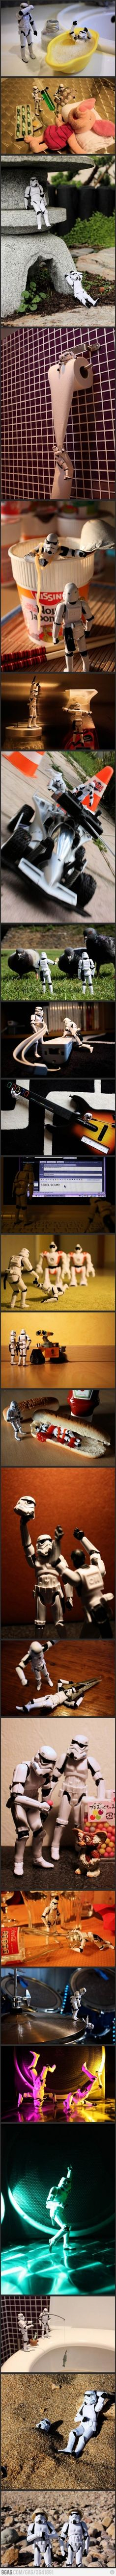 Stormtroopers - this is AWESOME!